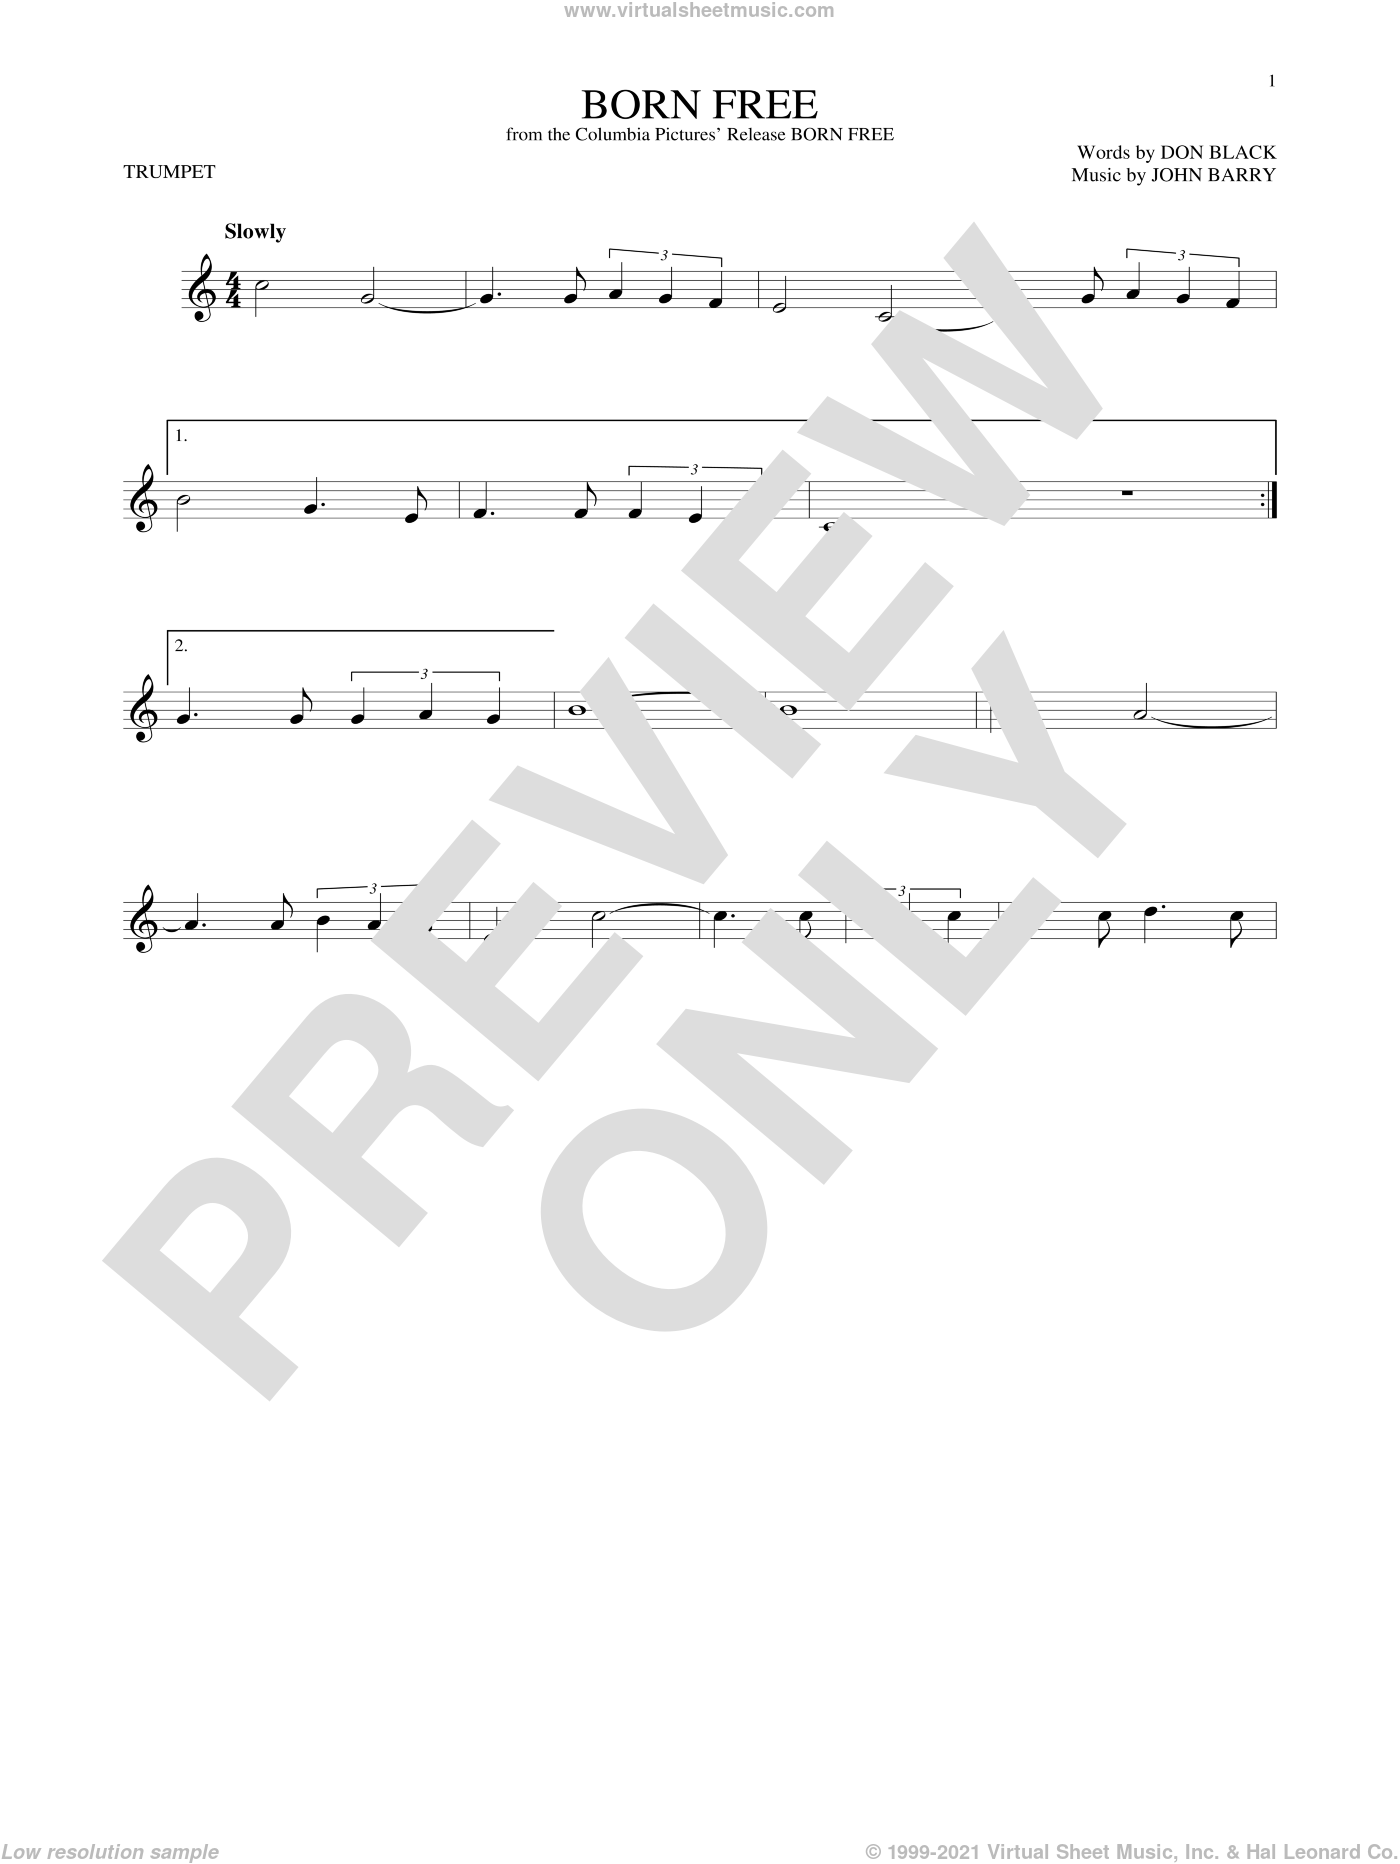 Born Free sheet music for trumpet solo by Don Black